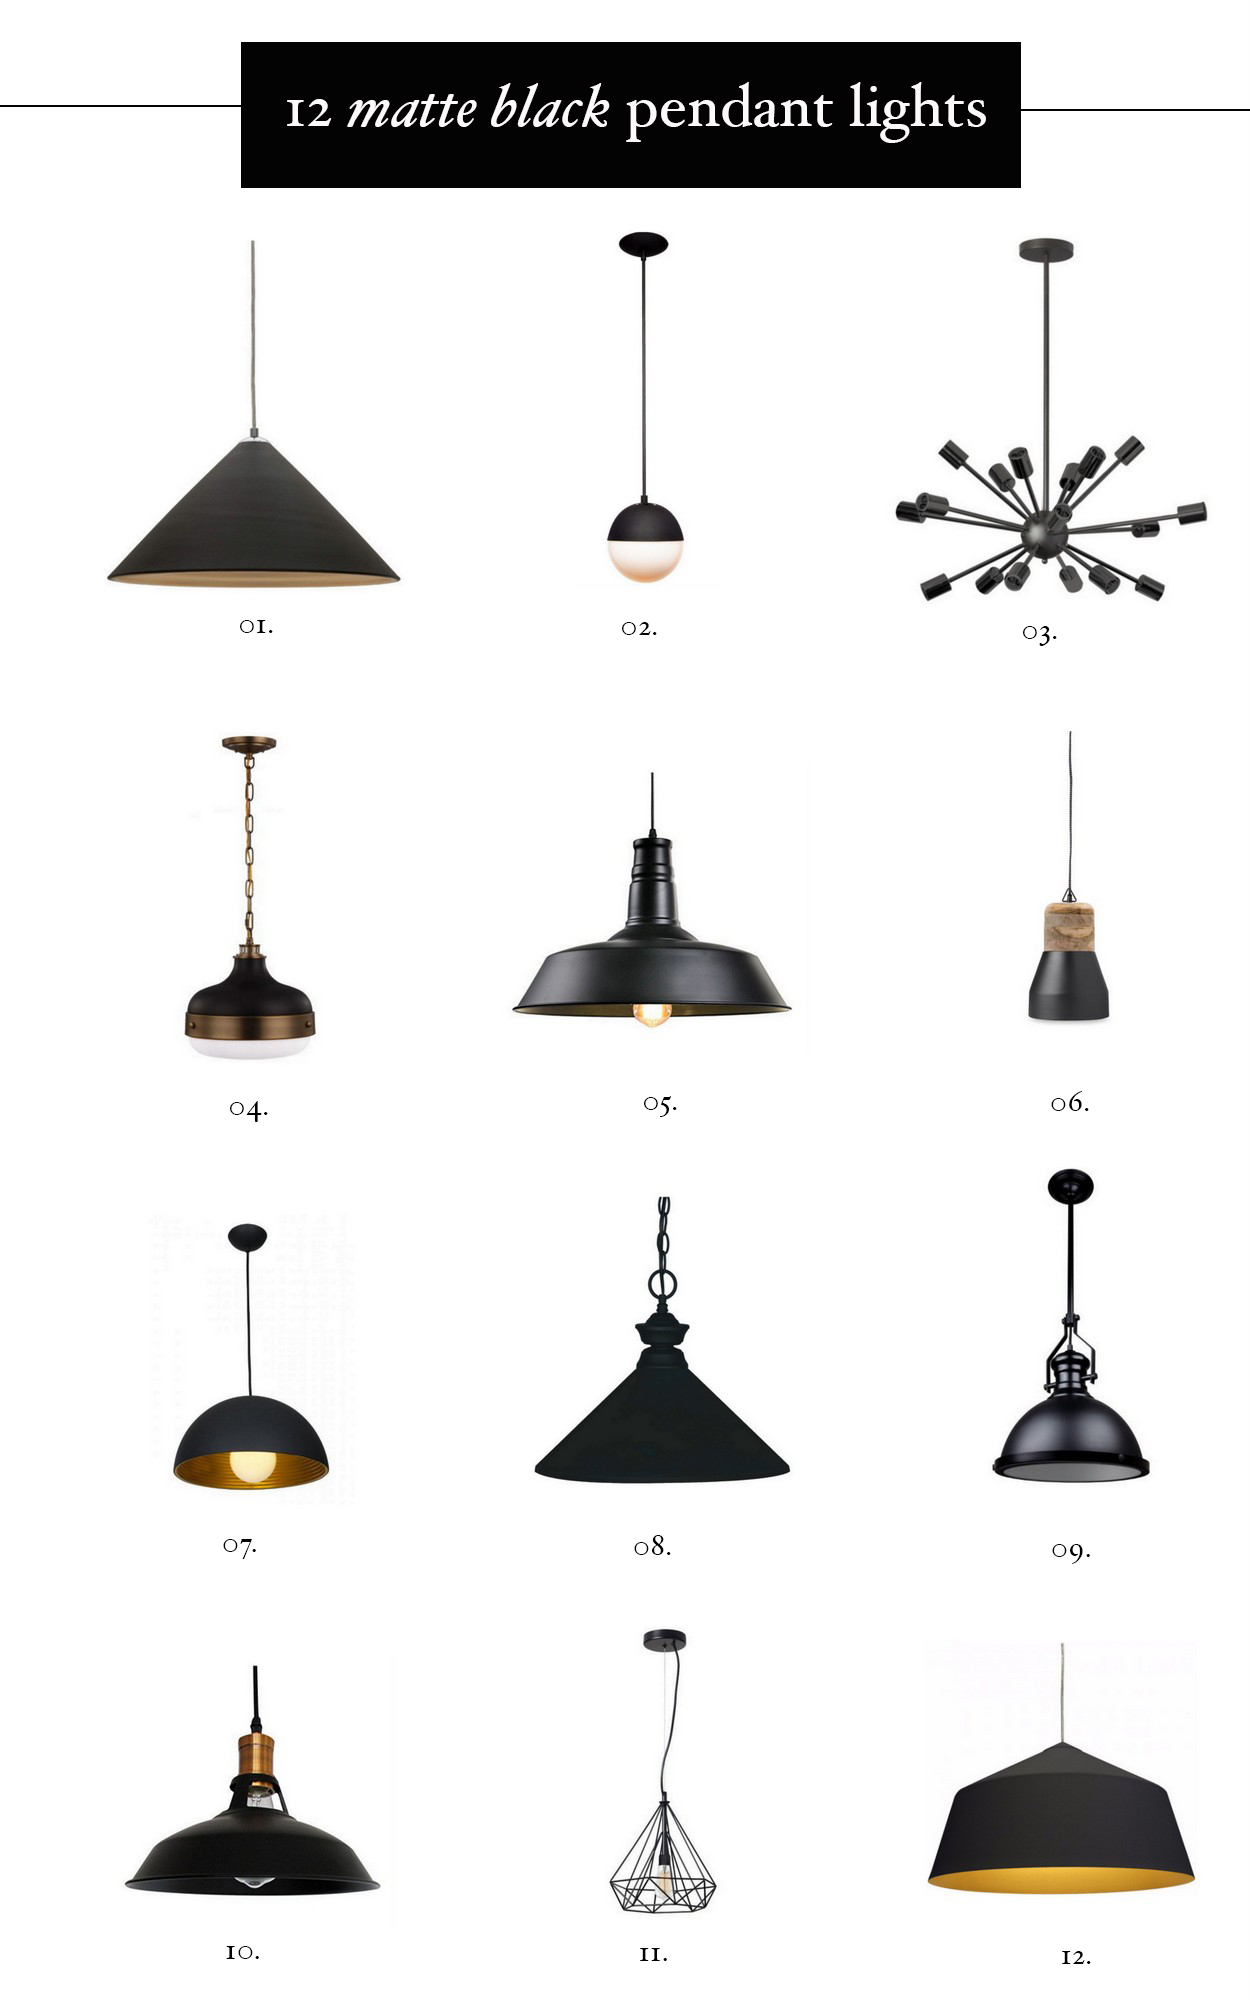 matte-black-pendant-lights